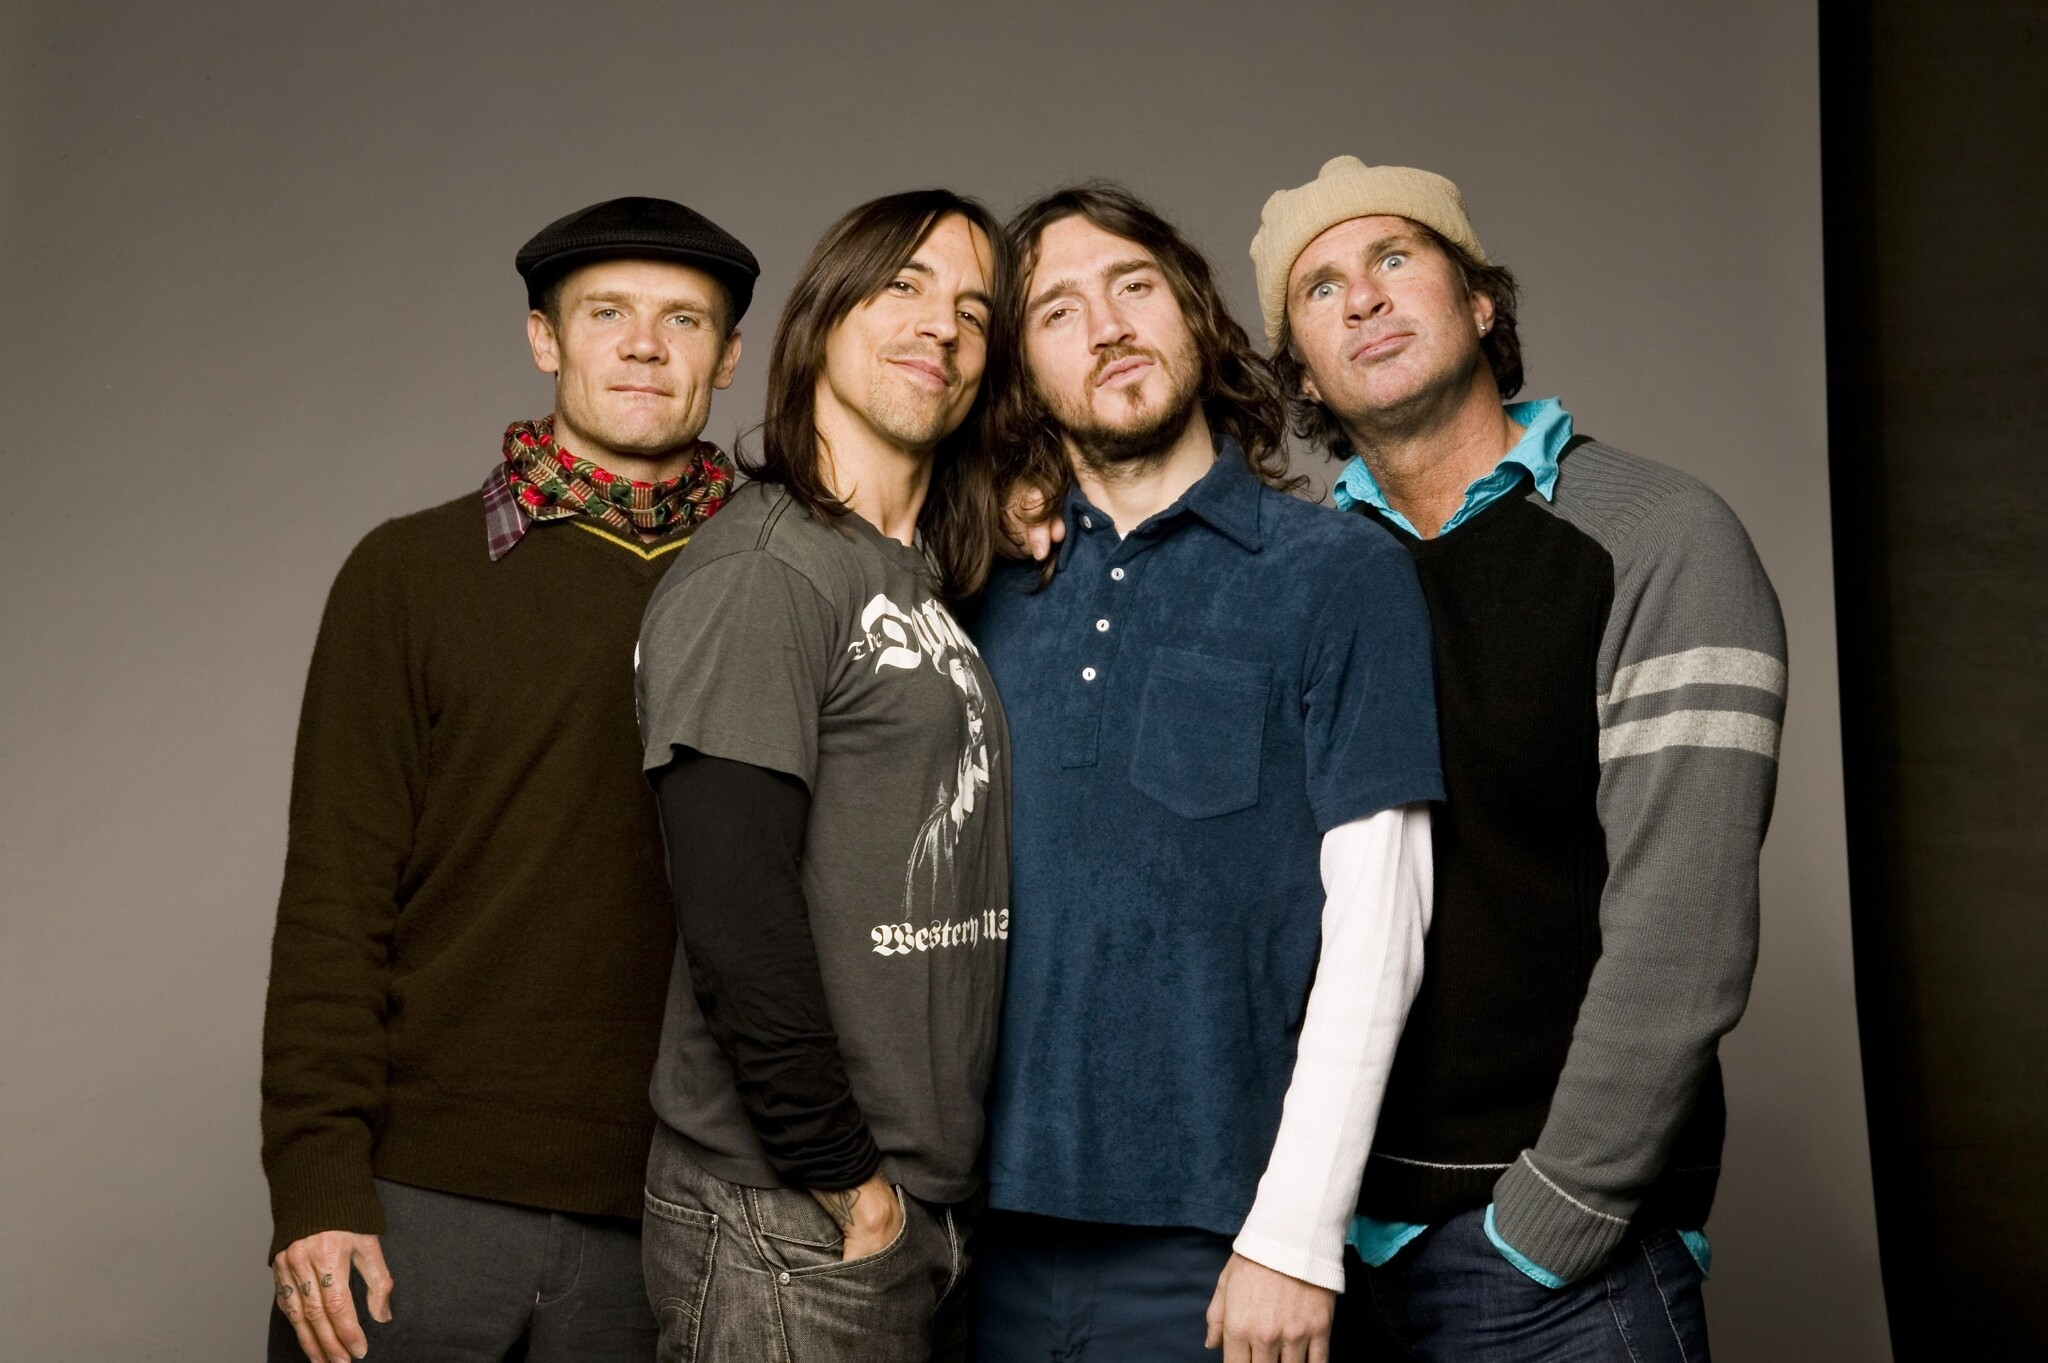 red hot chili peppers - photo #1